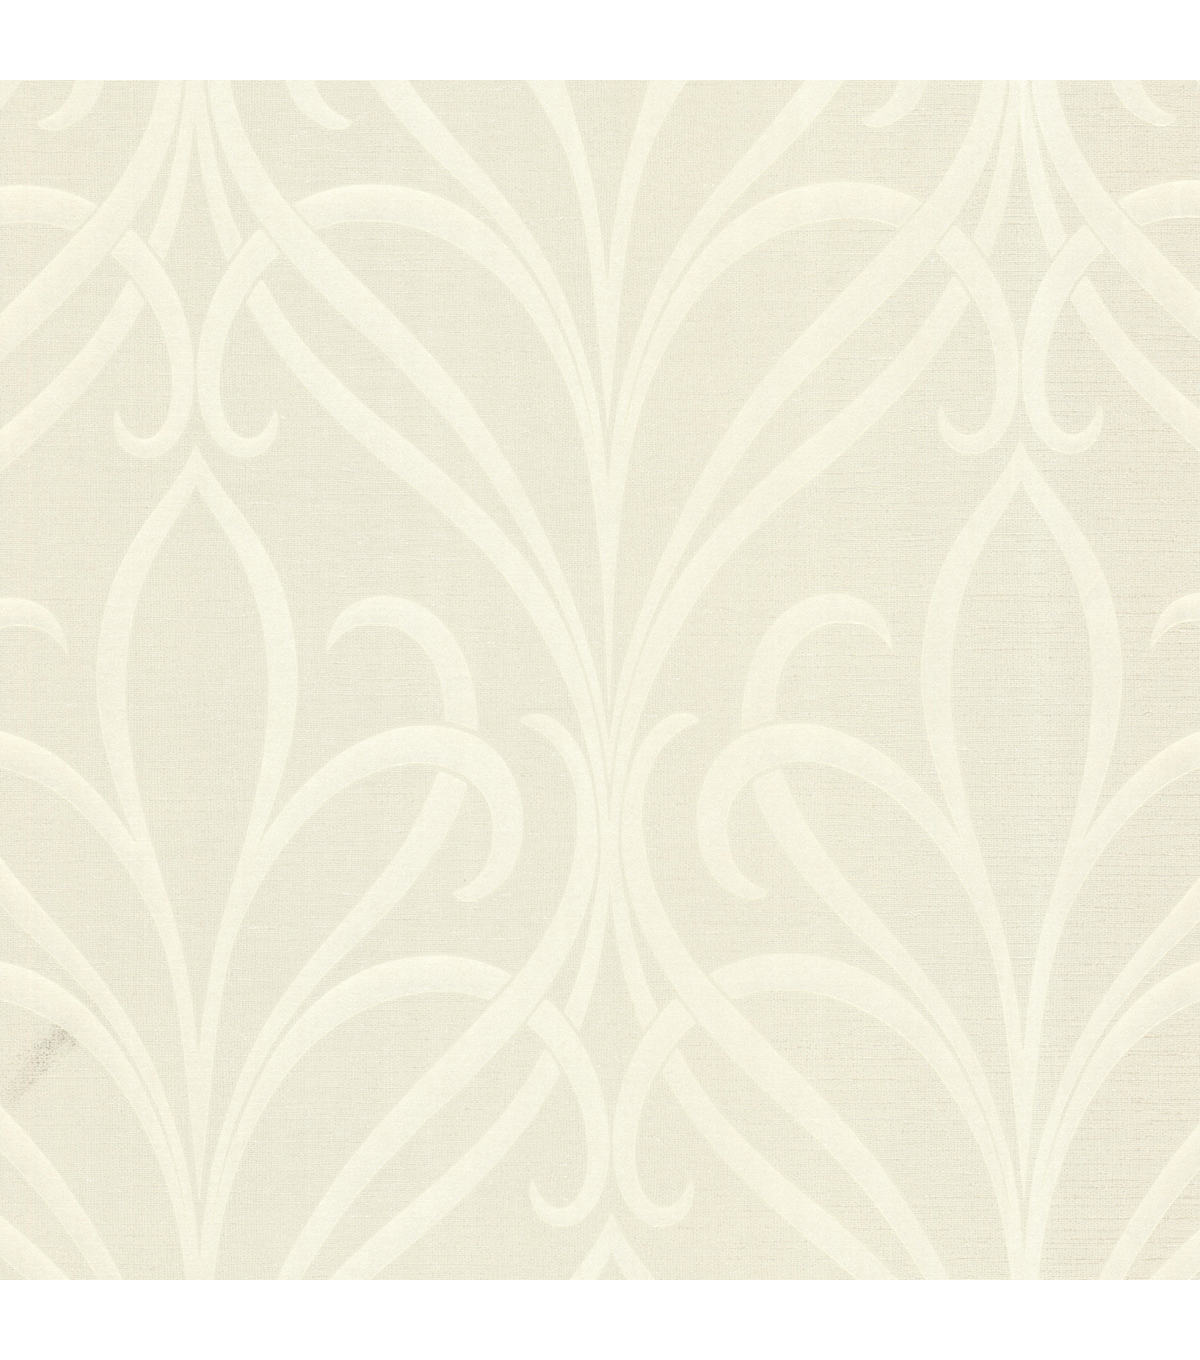 Lalique Cream Nouveau Damask Wallpaper